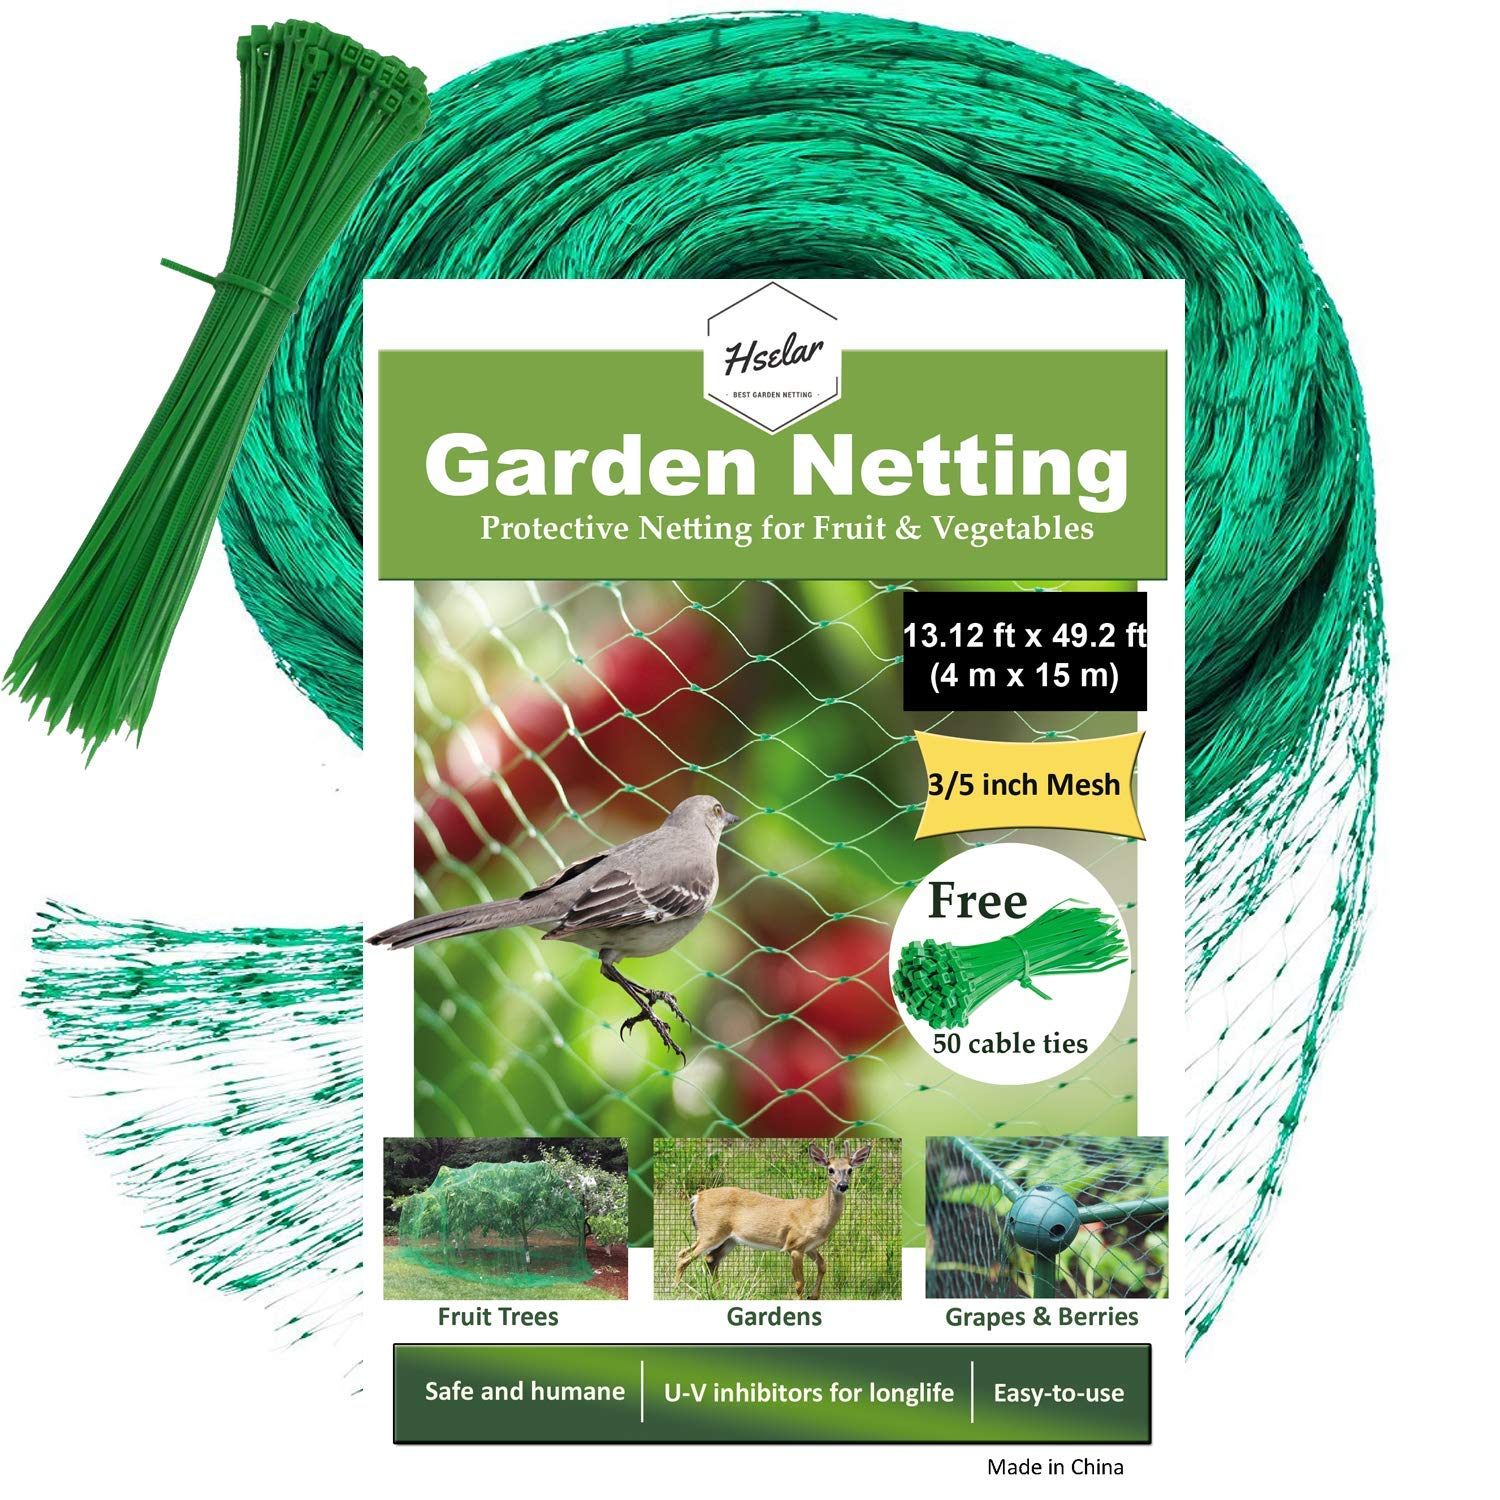 Hselar Best Bird Garden Netting - Protect Plants Fruit Trees, Blueberries, Squirrels Agriculture - 13.12Ft x 49.2Ft Anti Bird Netting with 50 Pcs Nylon Cable Ties - Reusable Instantly (Large Size)